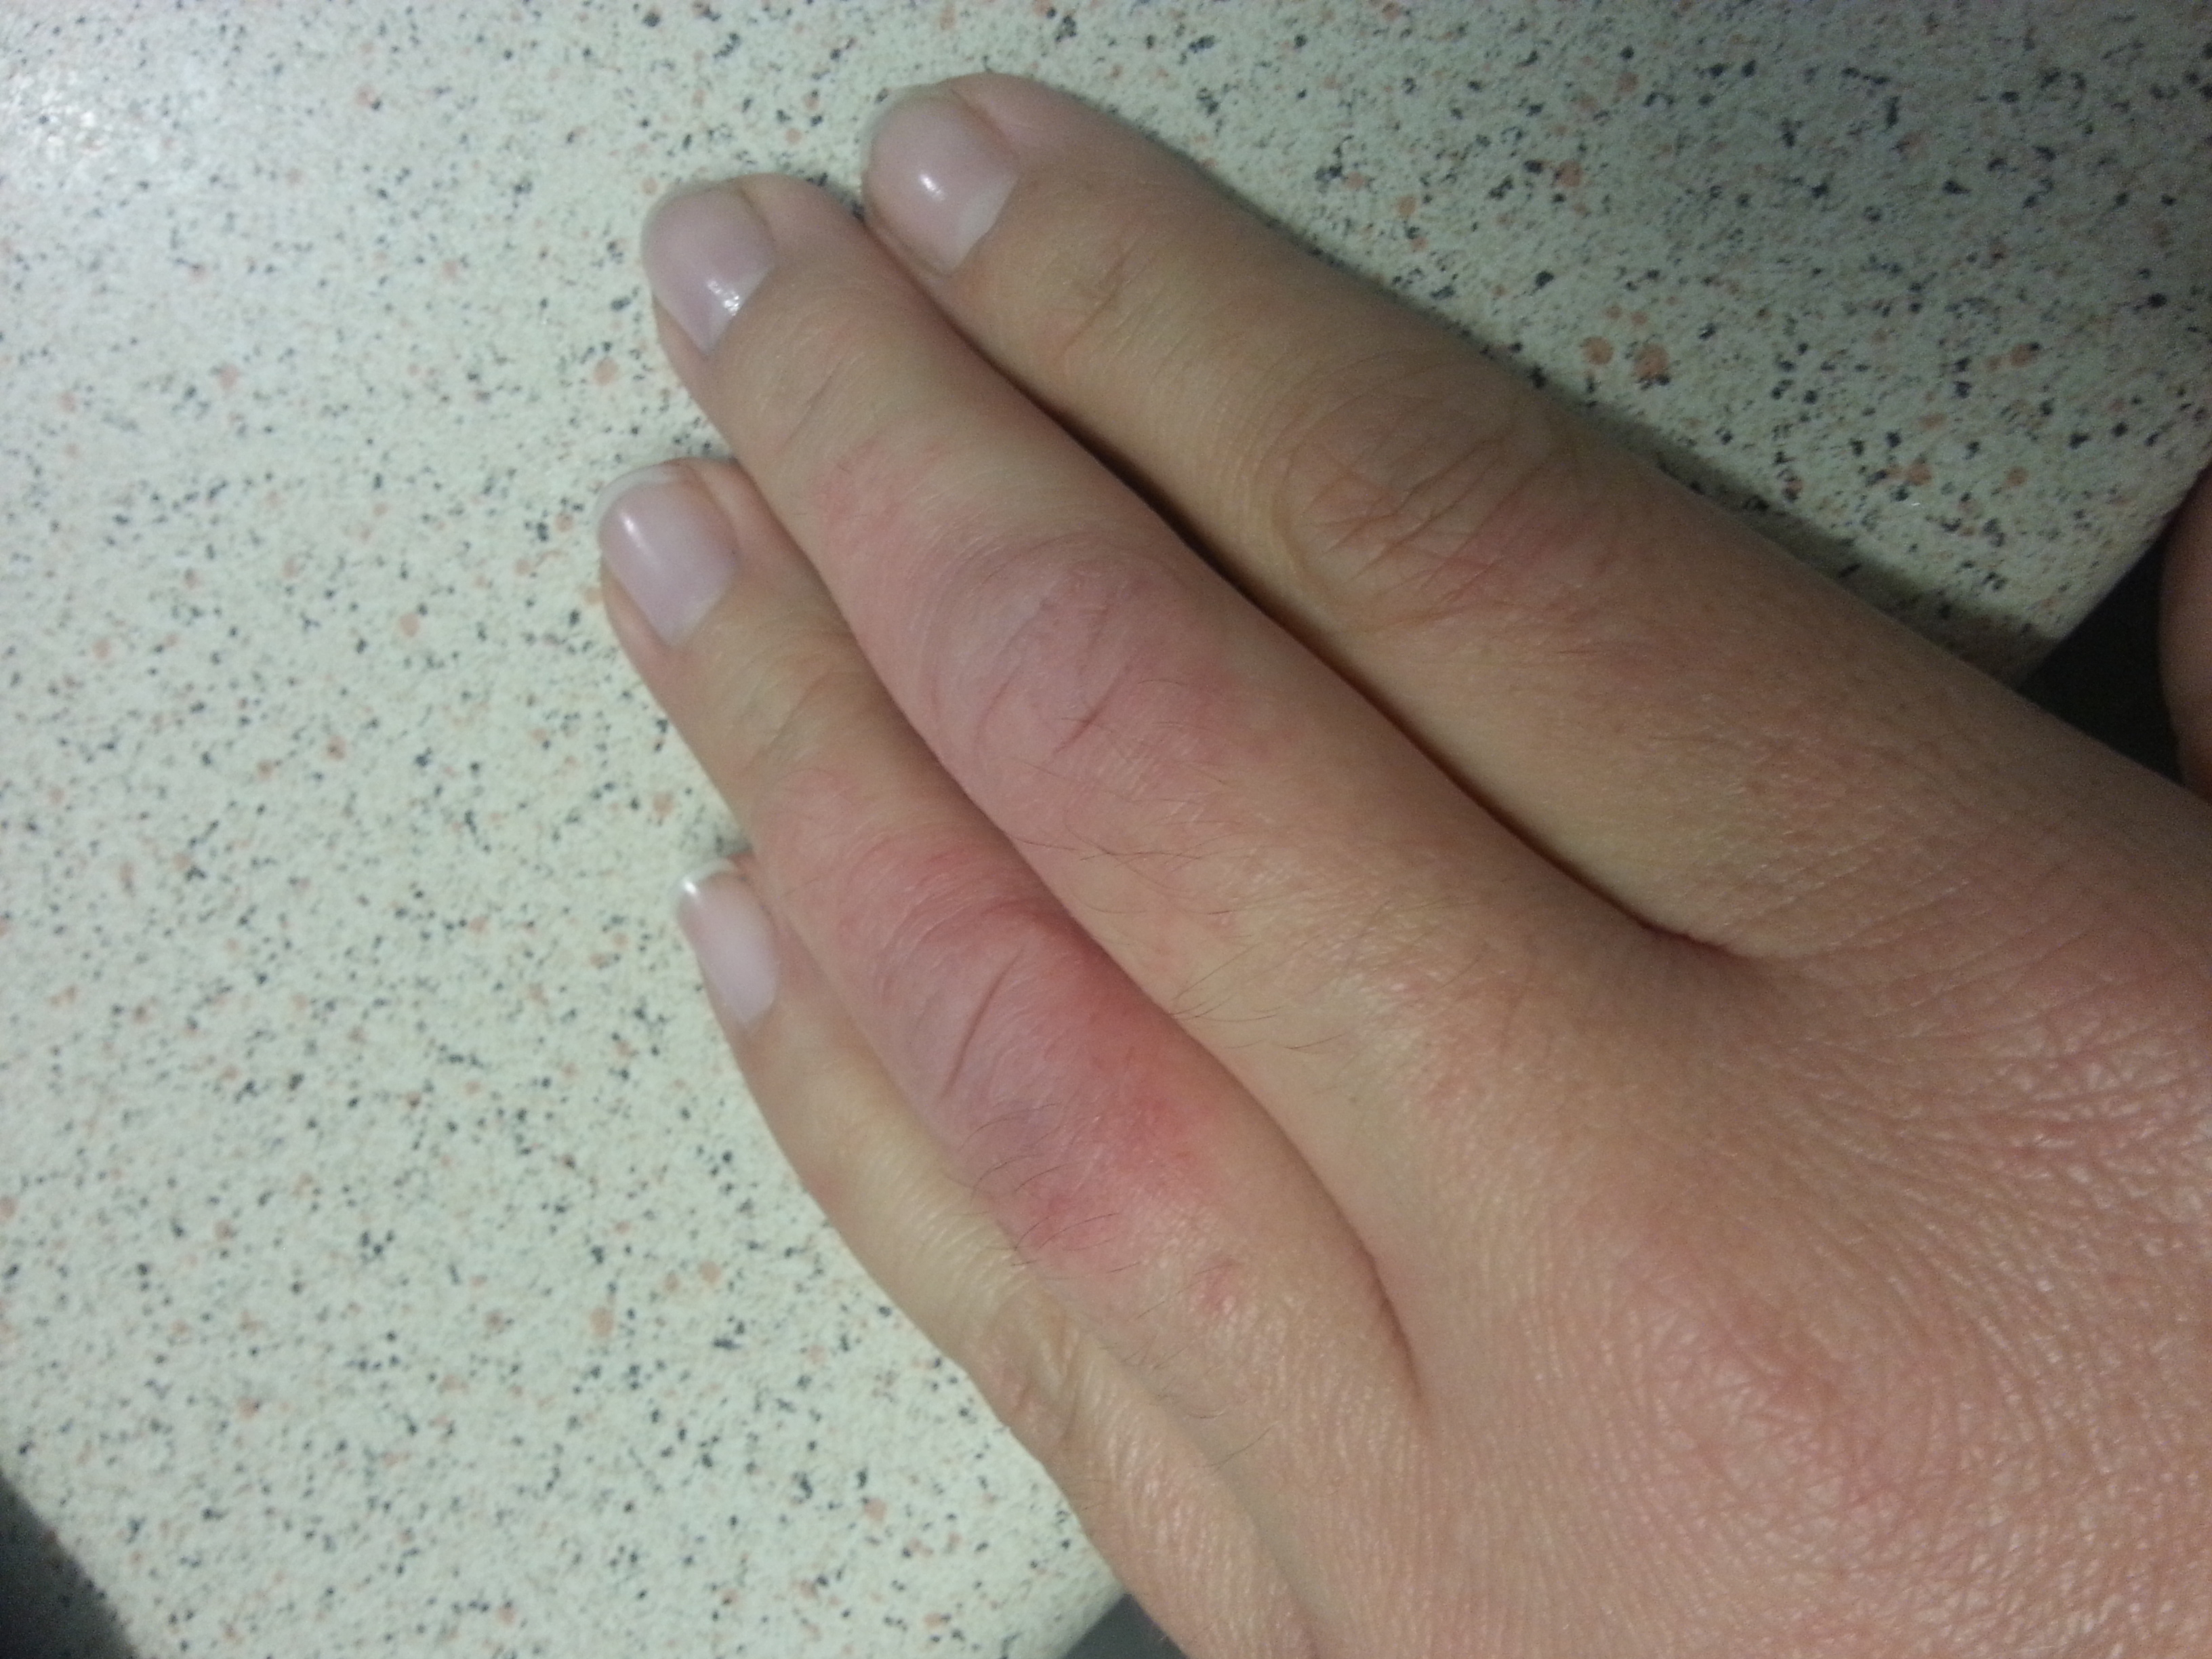 Wedding Ring Rash Have A Red Dry Irratable Rash On Two Fingers On My Left Hand